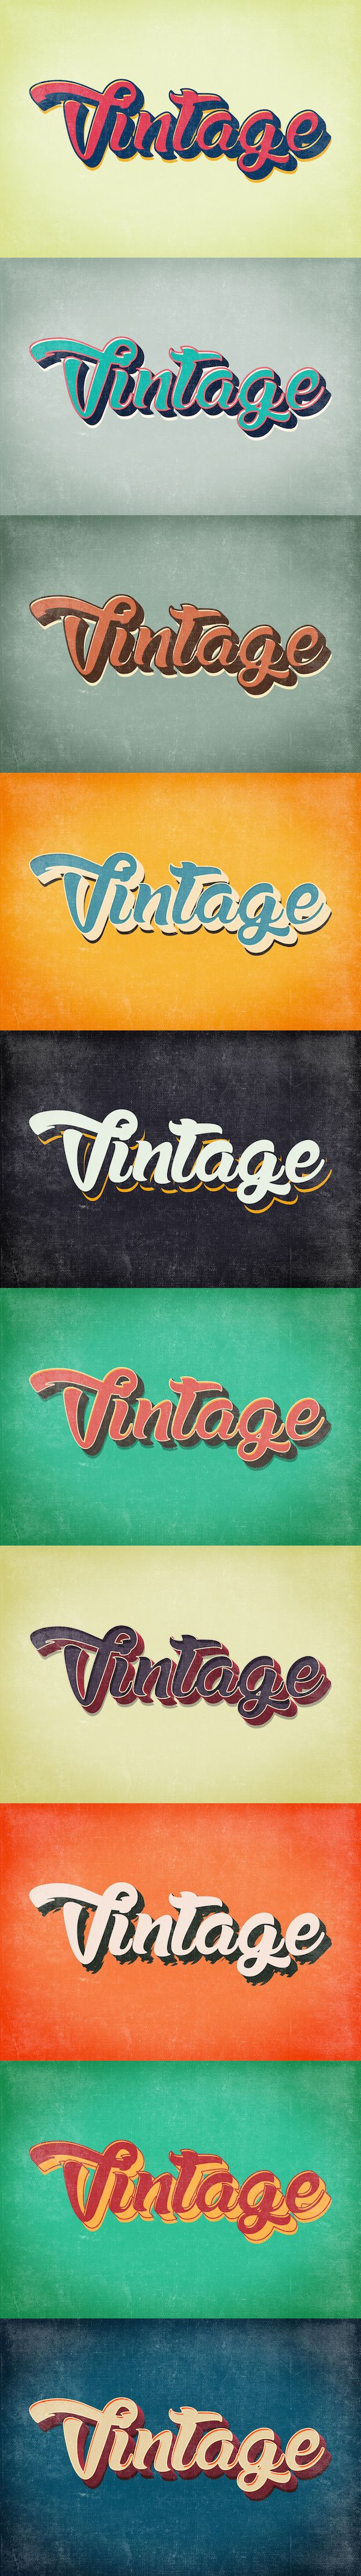 free-psd-text-effects